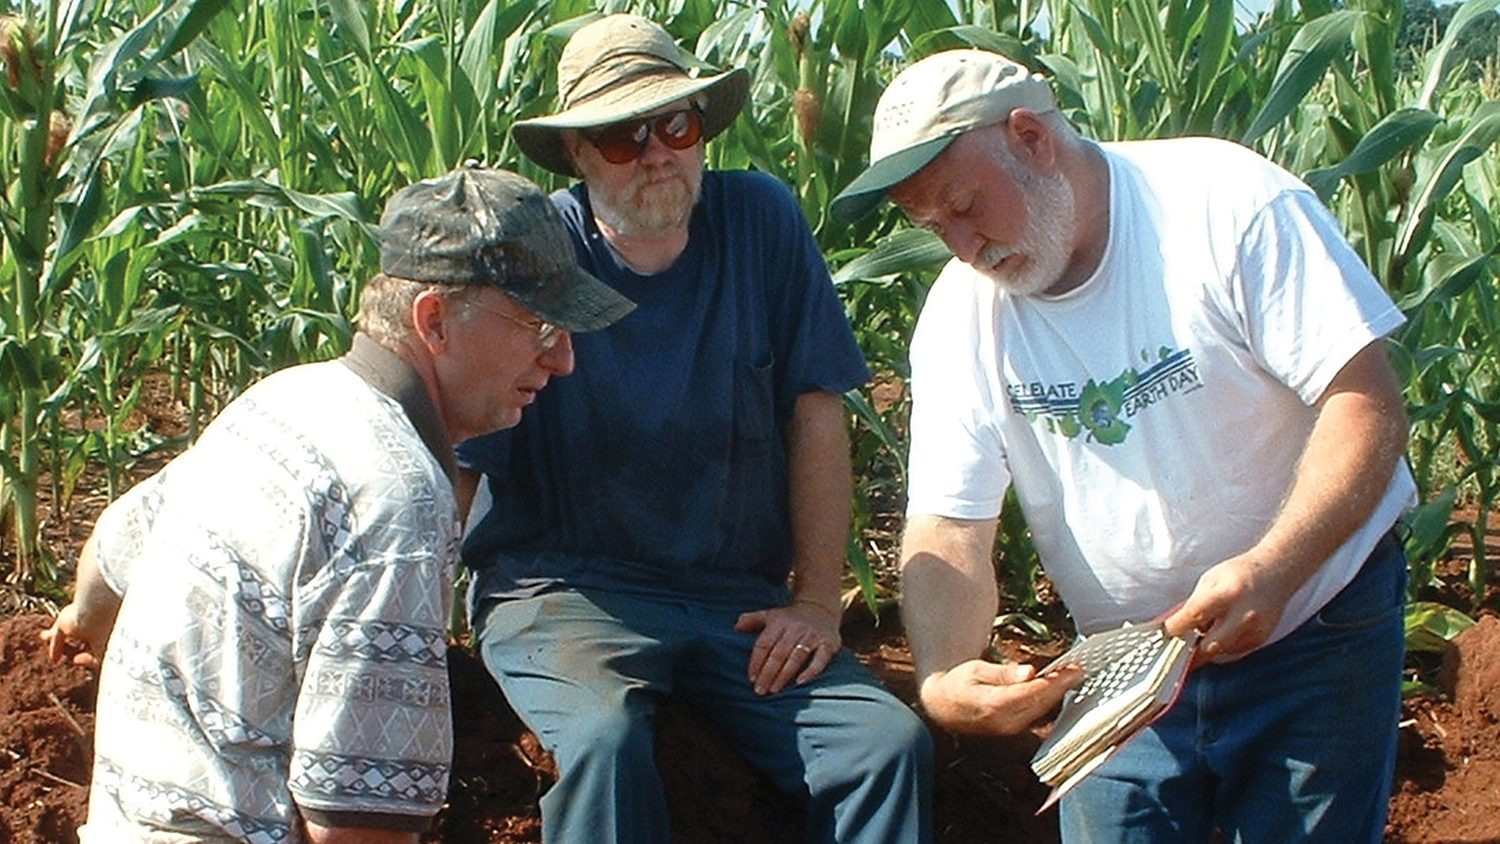 NC State Crop and Soil researchers testing soil in corn field